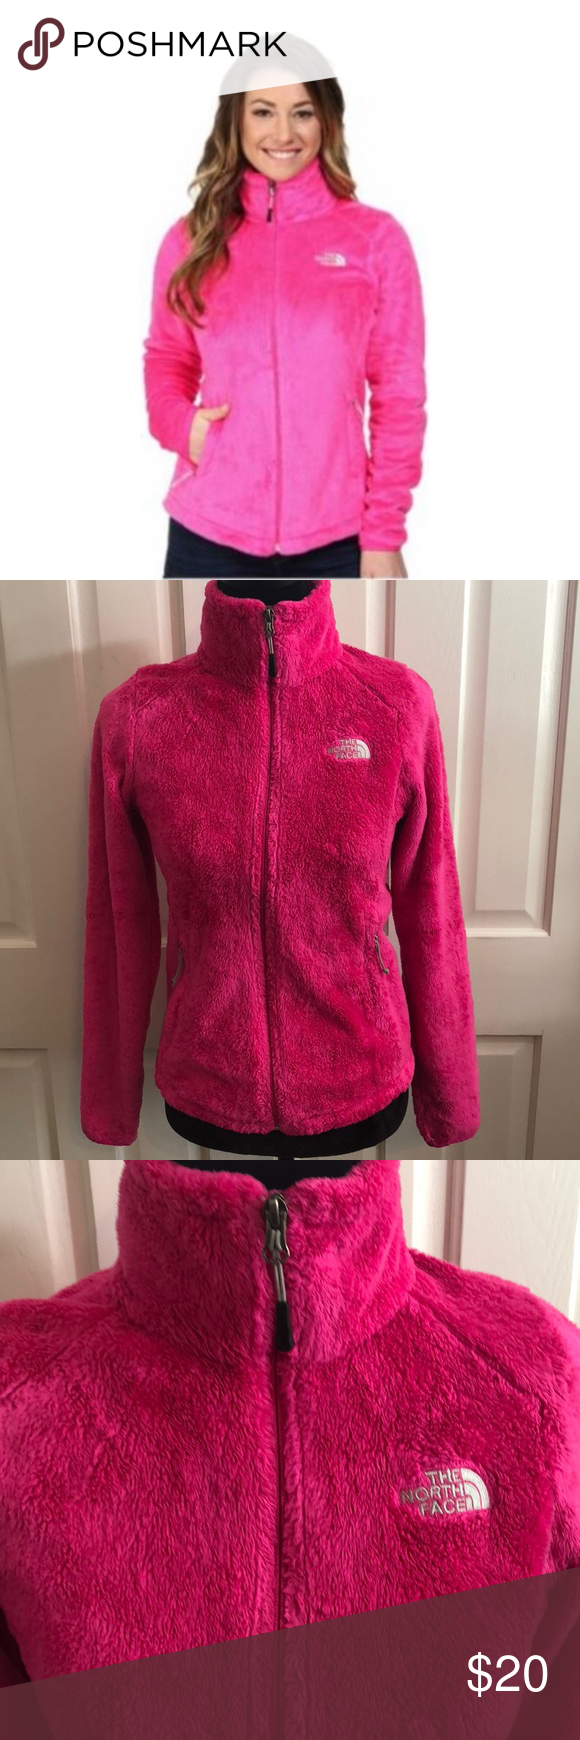 The North Face Womens Osito 2 Jacket North Face Women The North Face Fashion [ 1740 x 580 Pixel ]